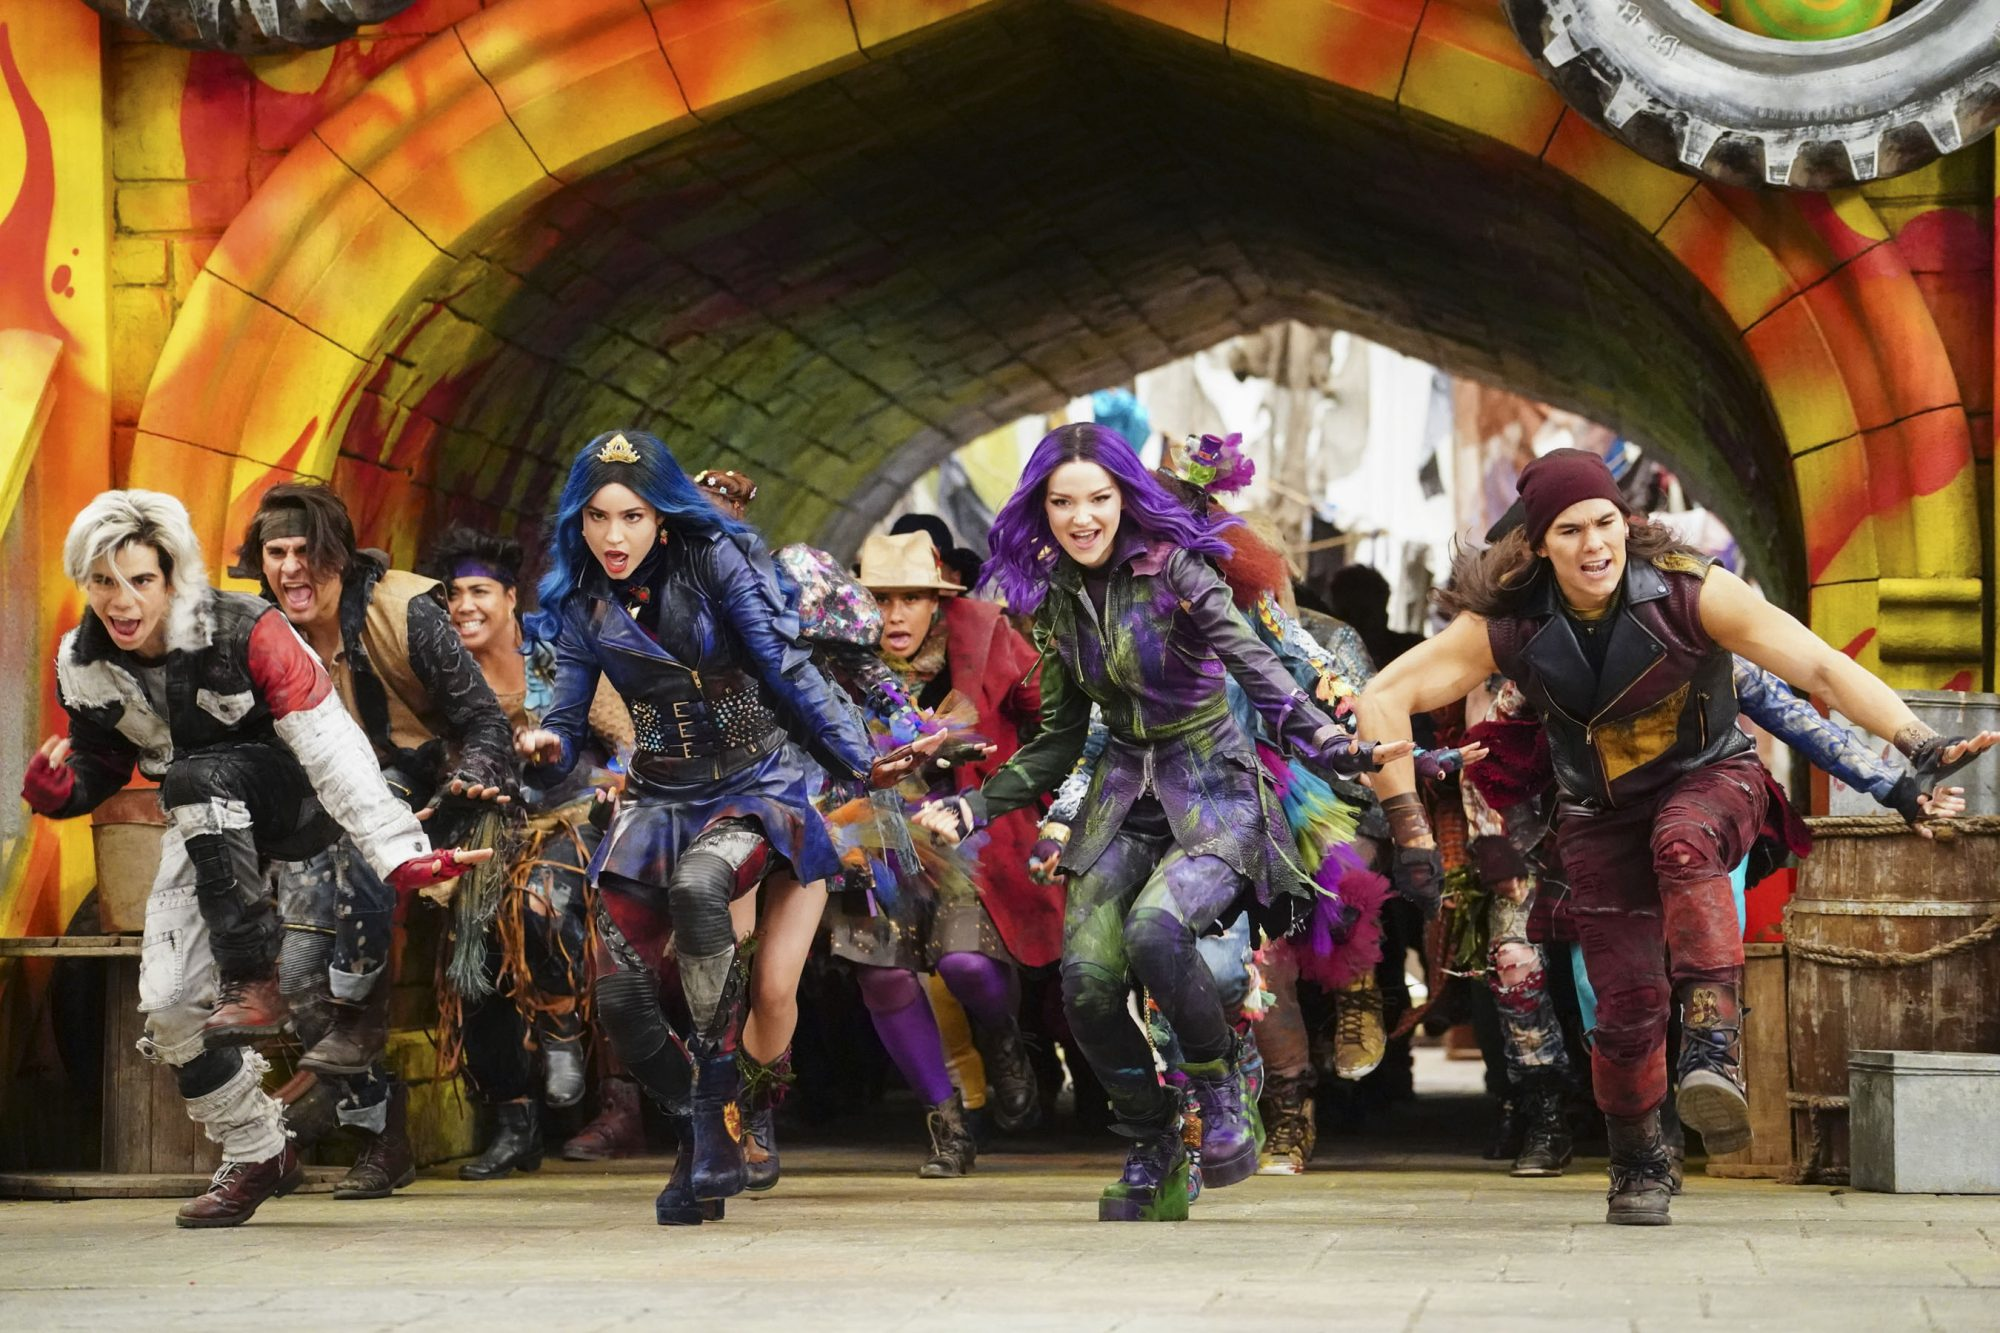 DESCENDANTS 3 - Coverage. (Disney Channel/David Bukach) CAMERON BOYCE, SOFIA CARSON, DOVE CAMERON, BOOBOO STEWART